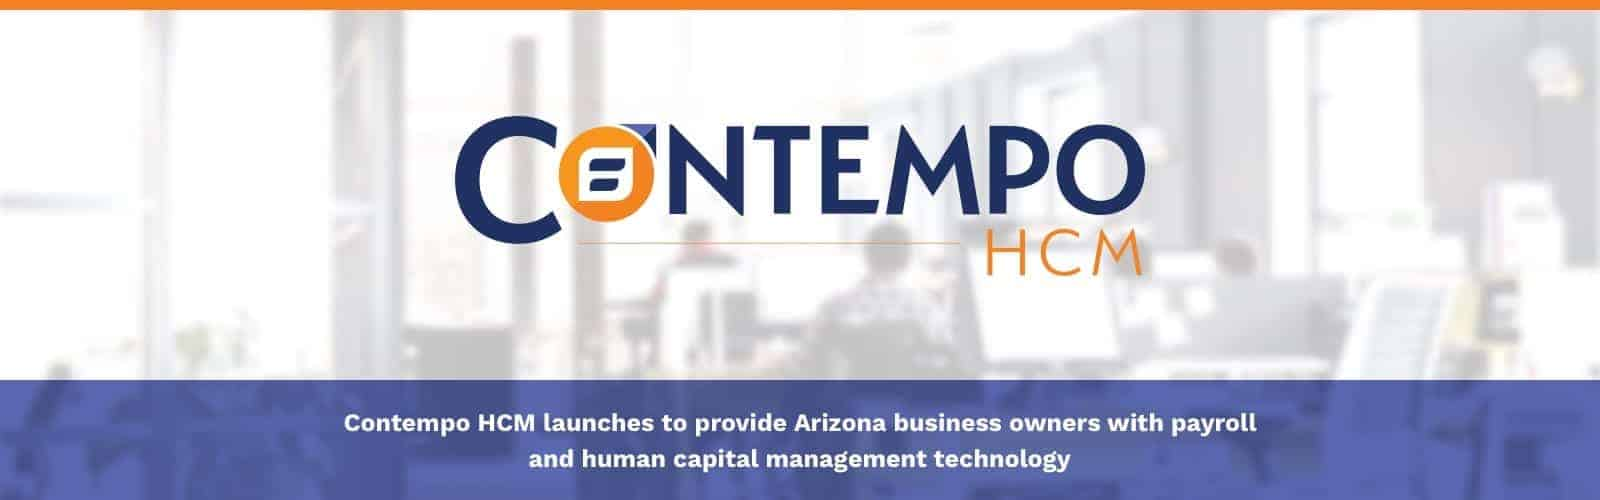 announcing Contempo HCM - payroll services and human capital management